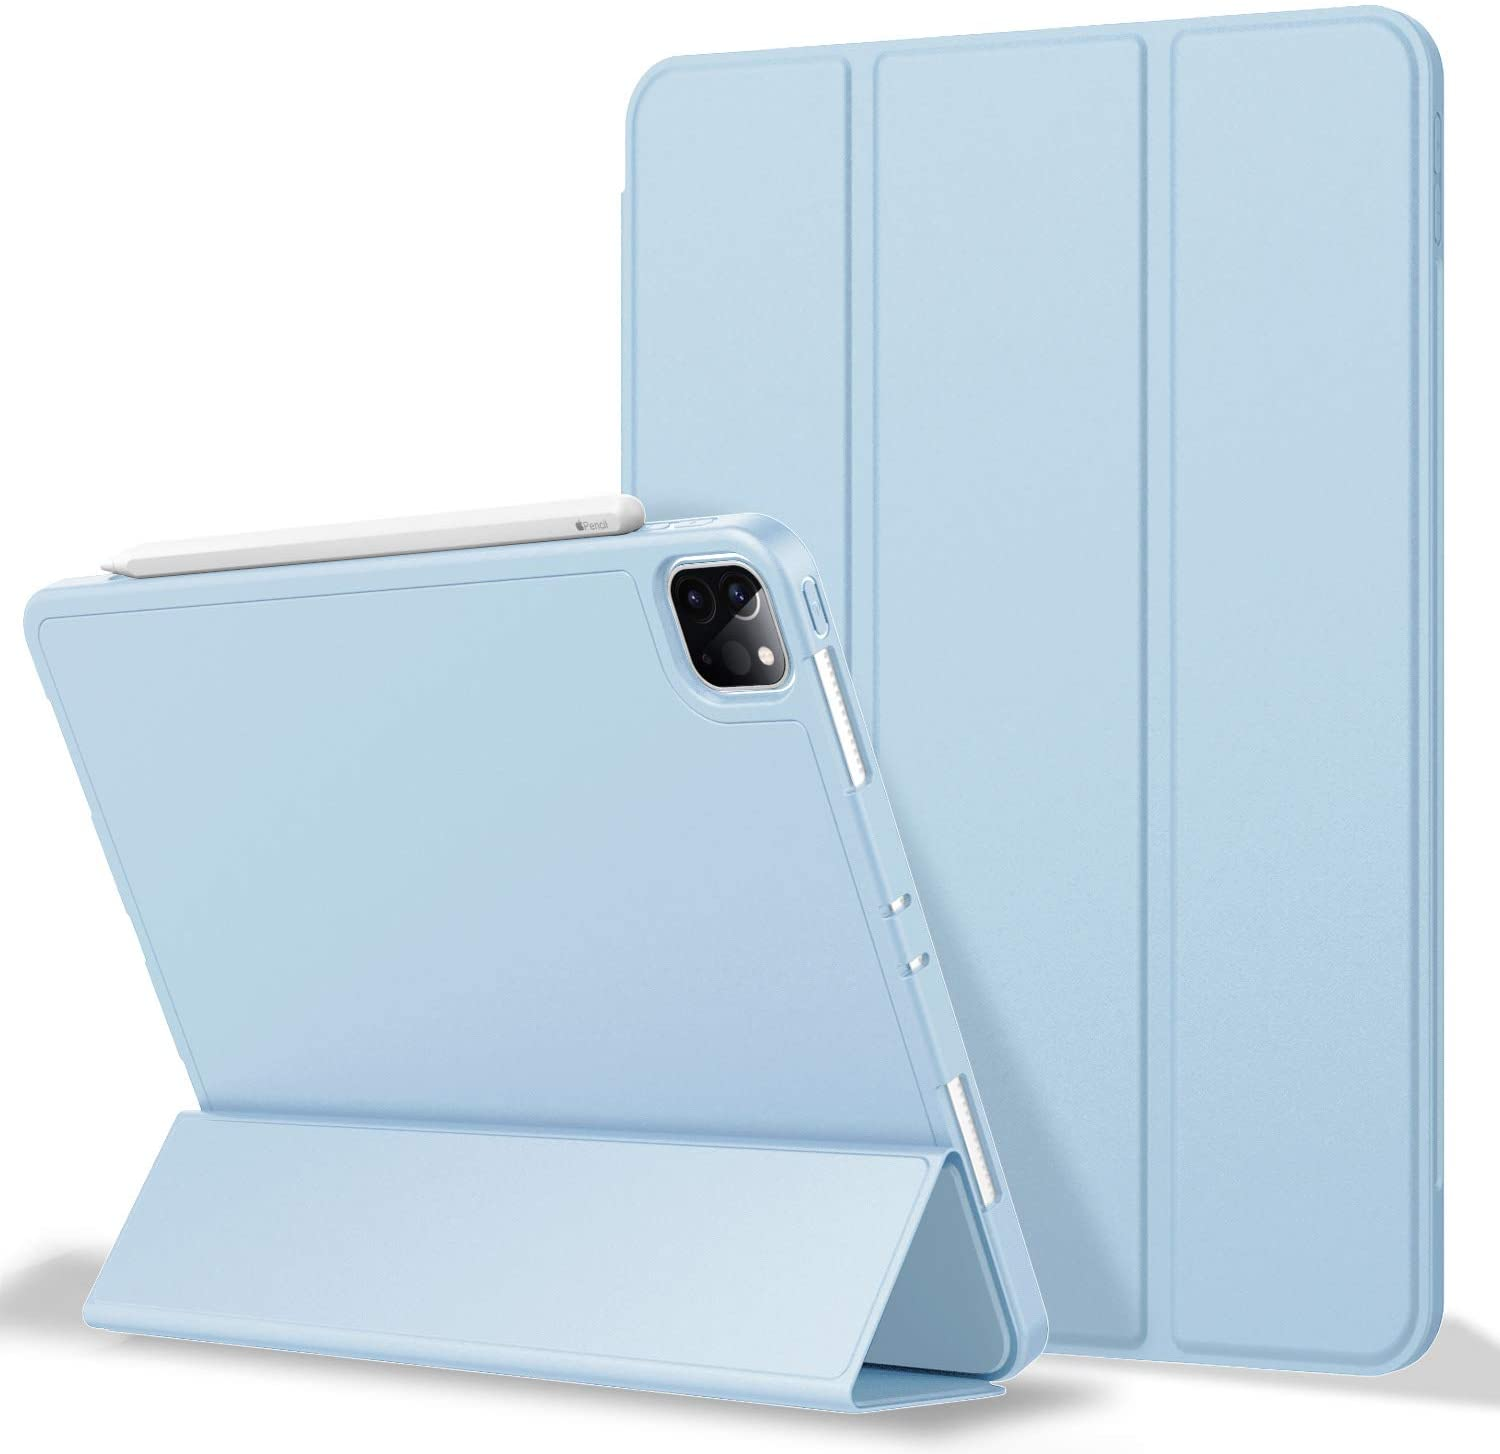 iPad Pro 11 Case 2020 with Pencil Holder (2nd Generation), ZryXal Premium Protective Case Cover with Soft TPU Back and Auto Sleep/Wake Feature for 2020/2018 iPad Pro 11 (Sky Blue)